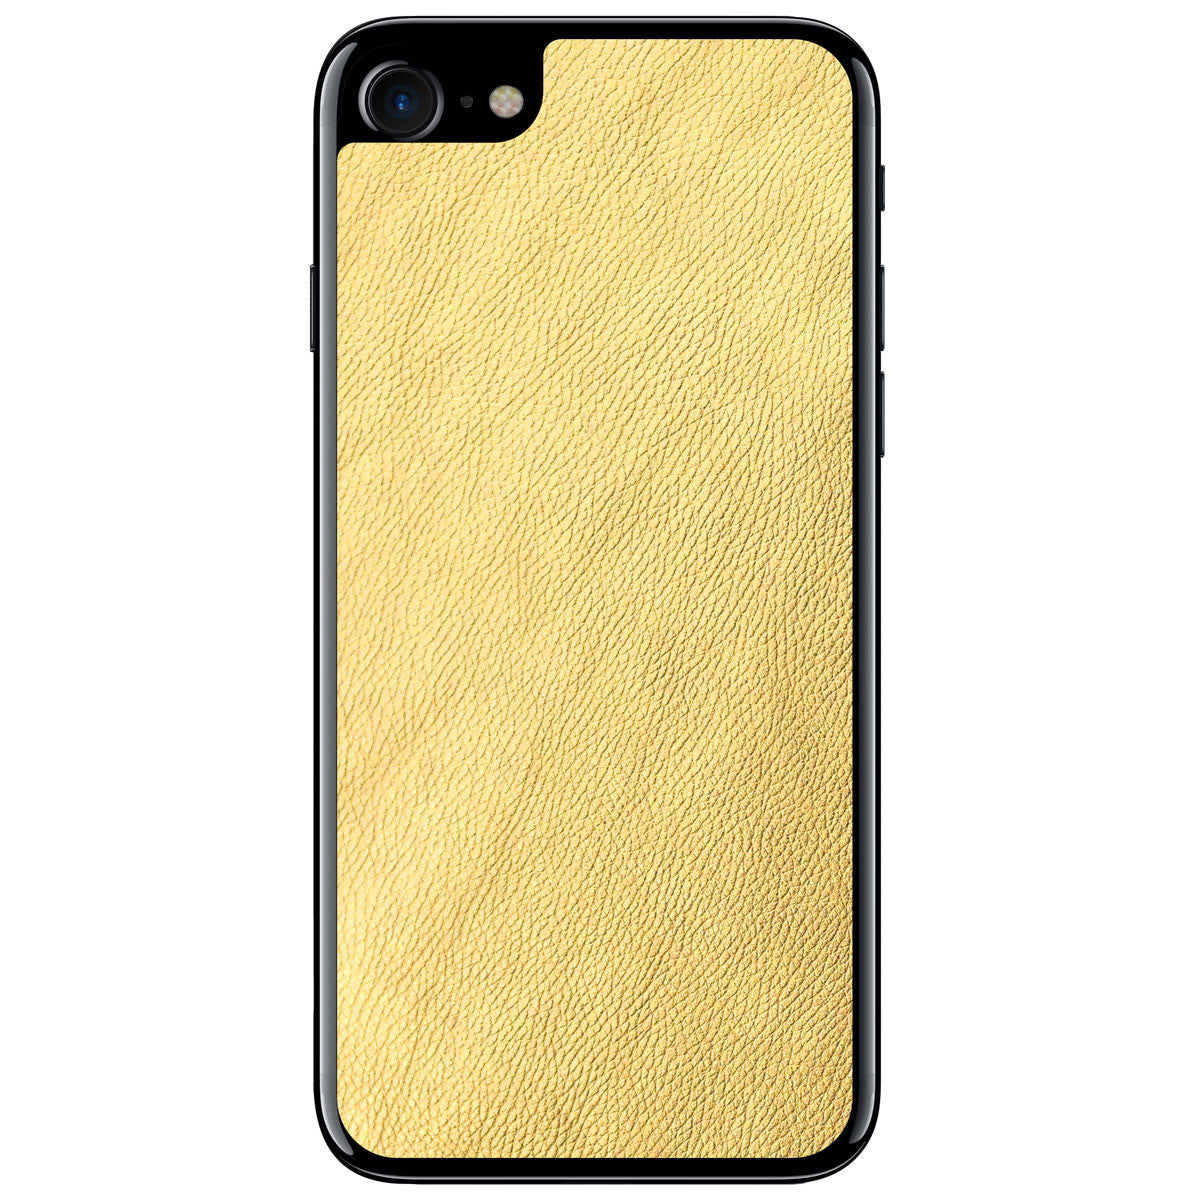 Gold iPhone 7 Leather Skin